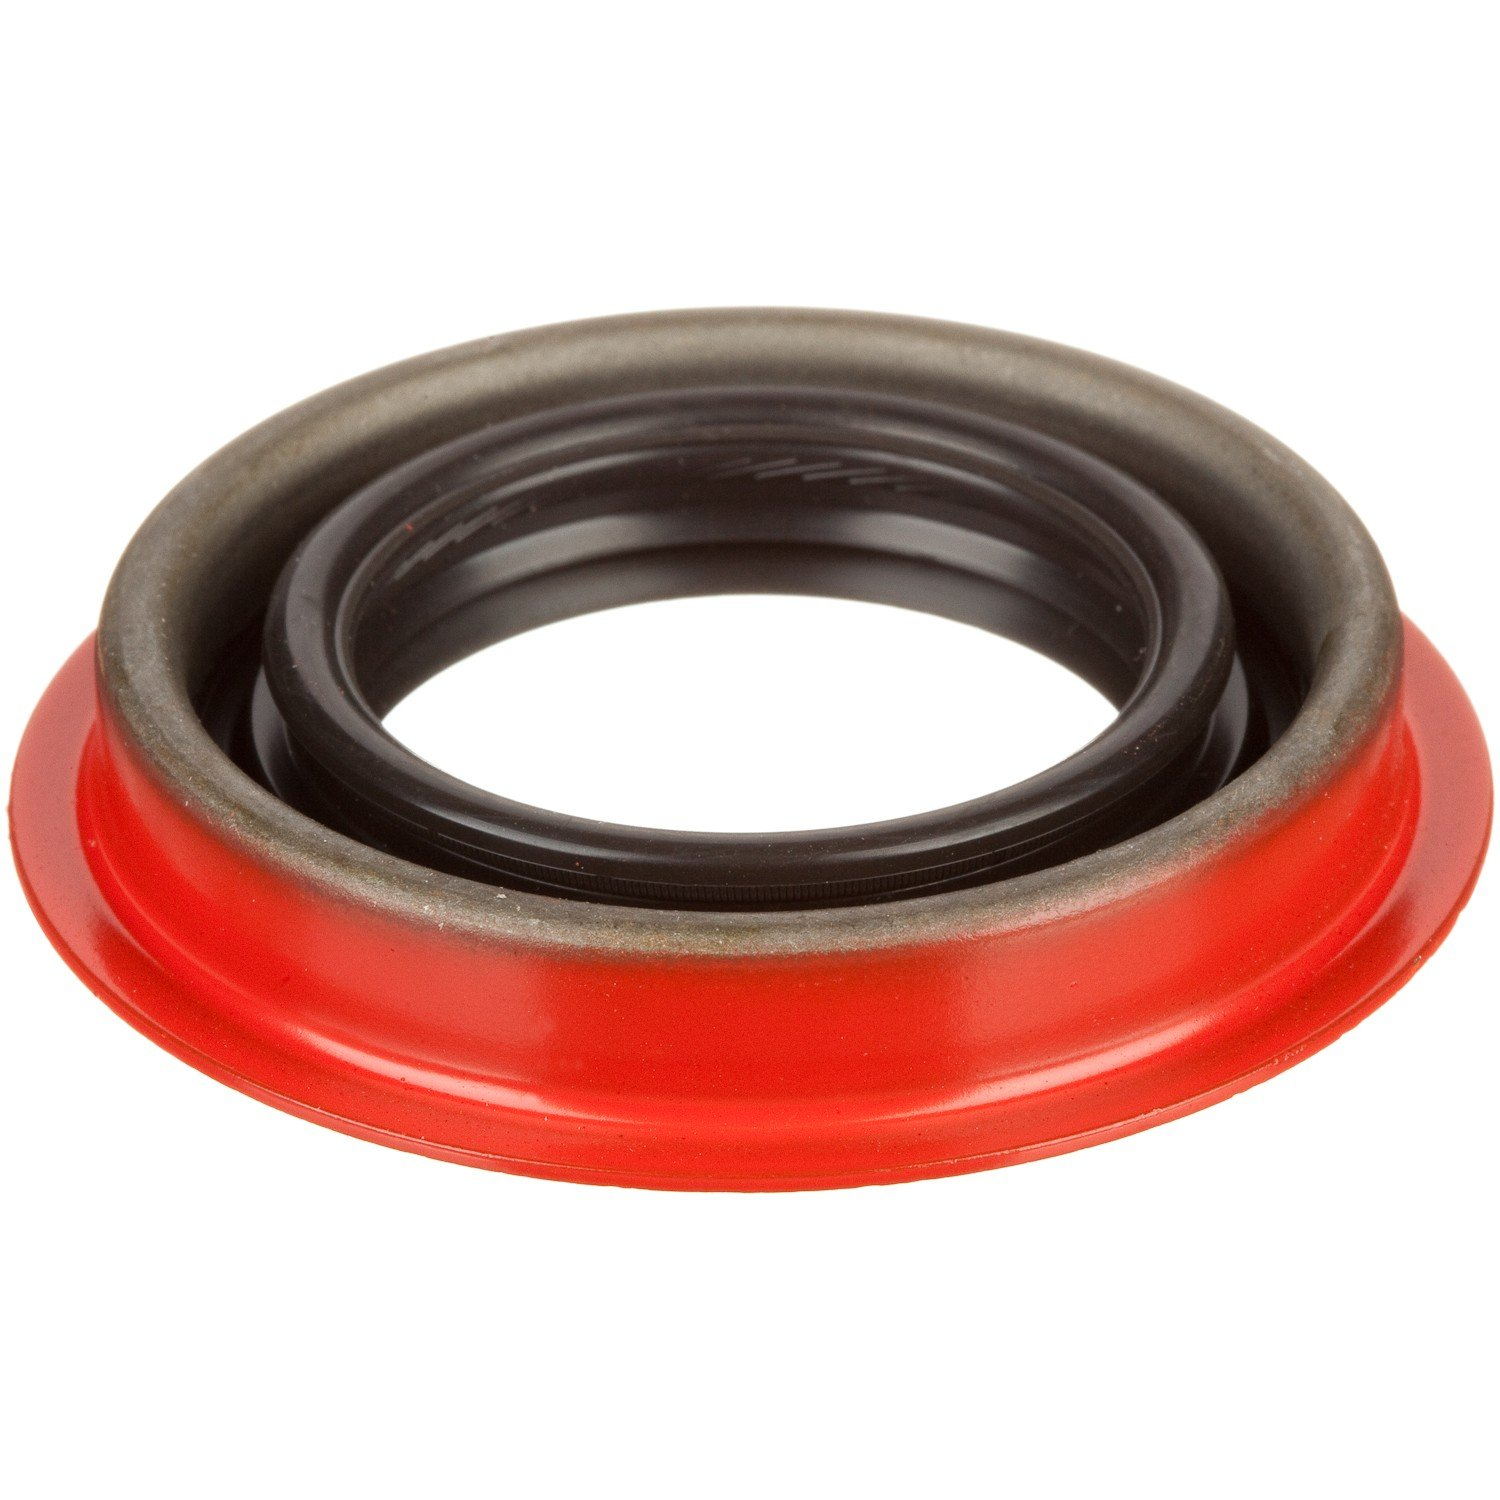 ATP HO-9 Automatic Transmission Extension Housing Seal